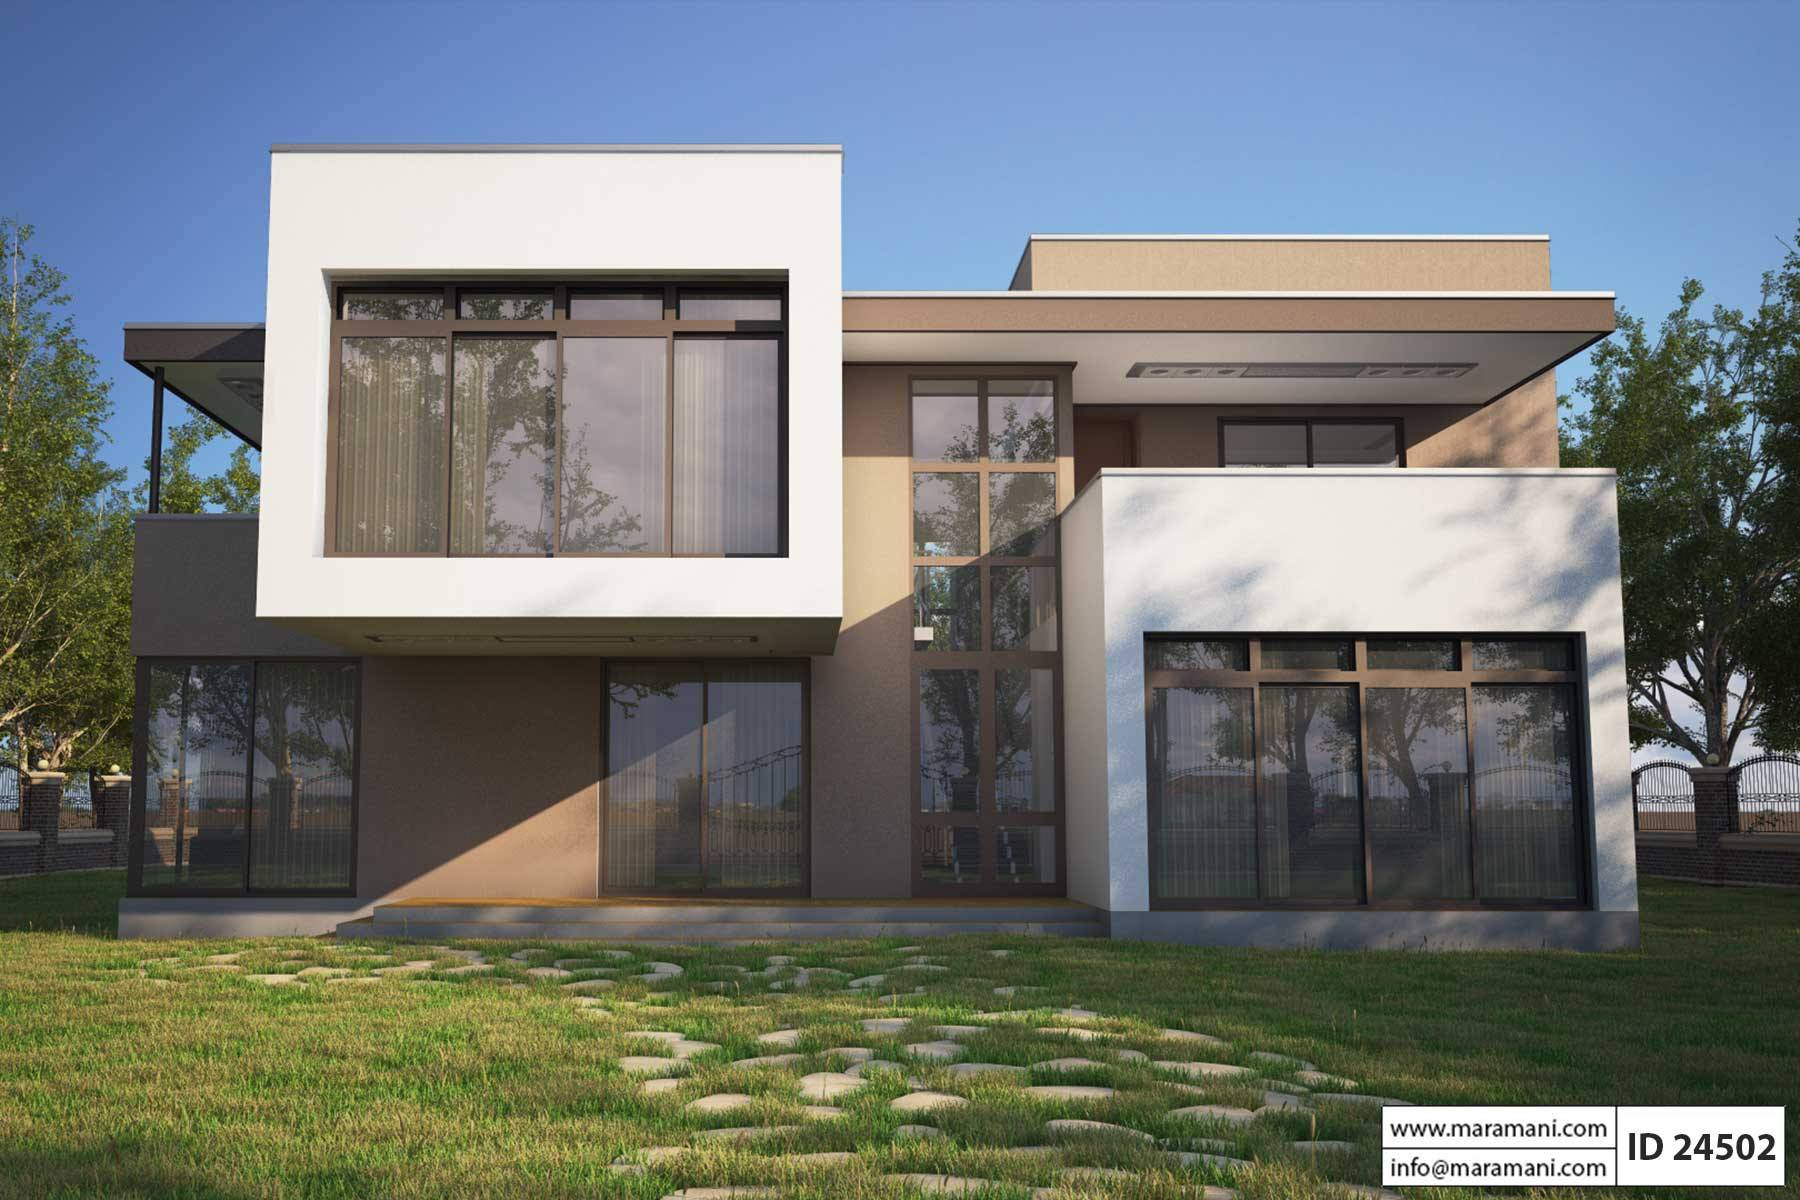 4 Bedroom House PlansDesigns for AfricaHouse Plans by Maramani